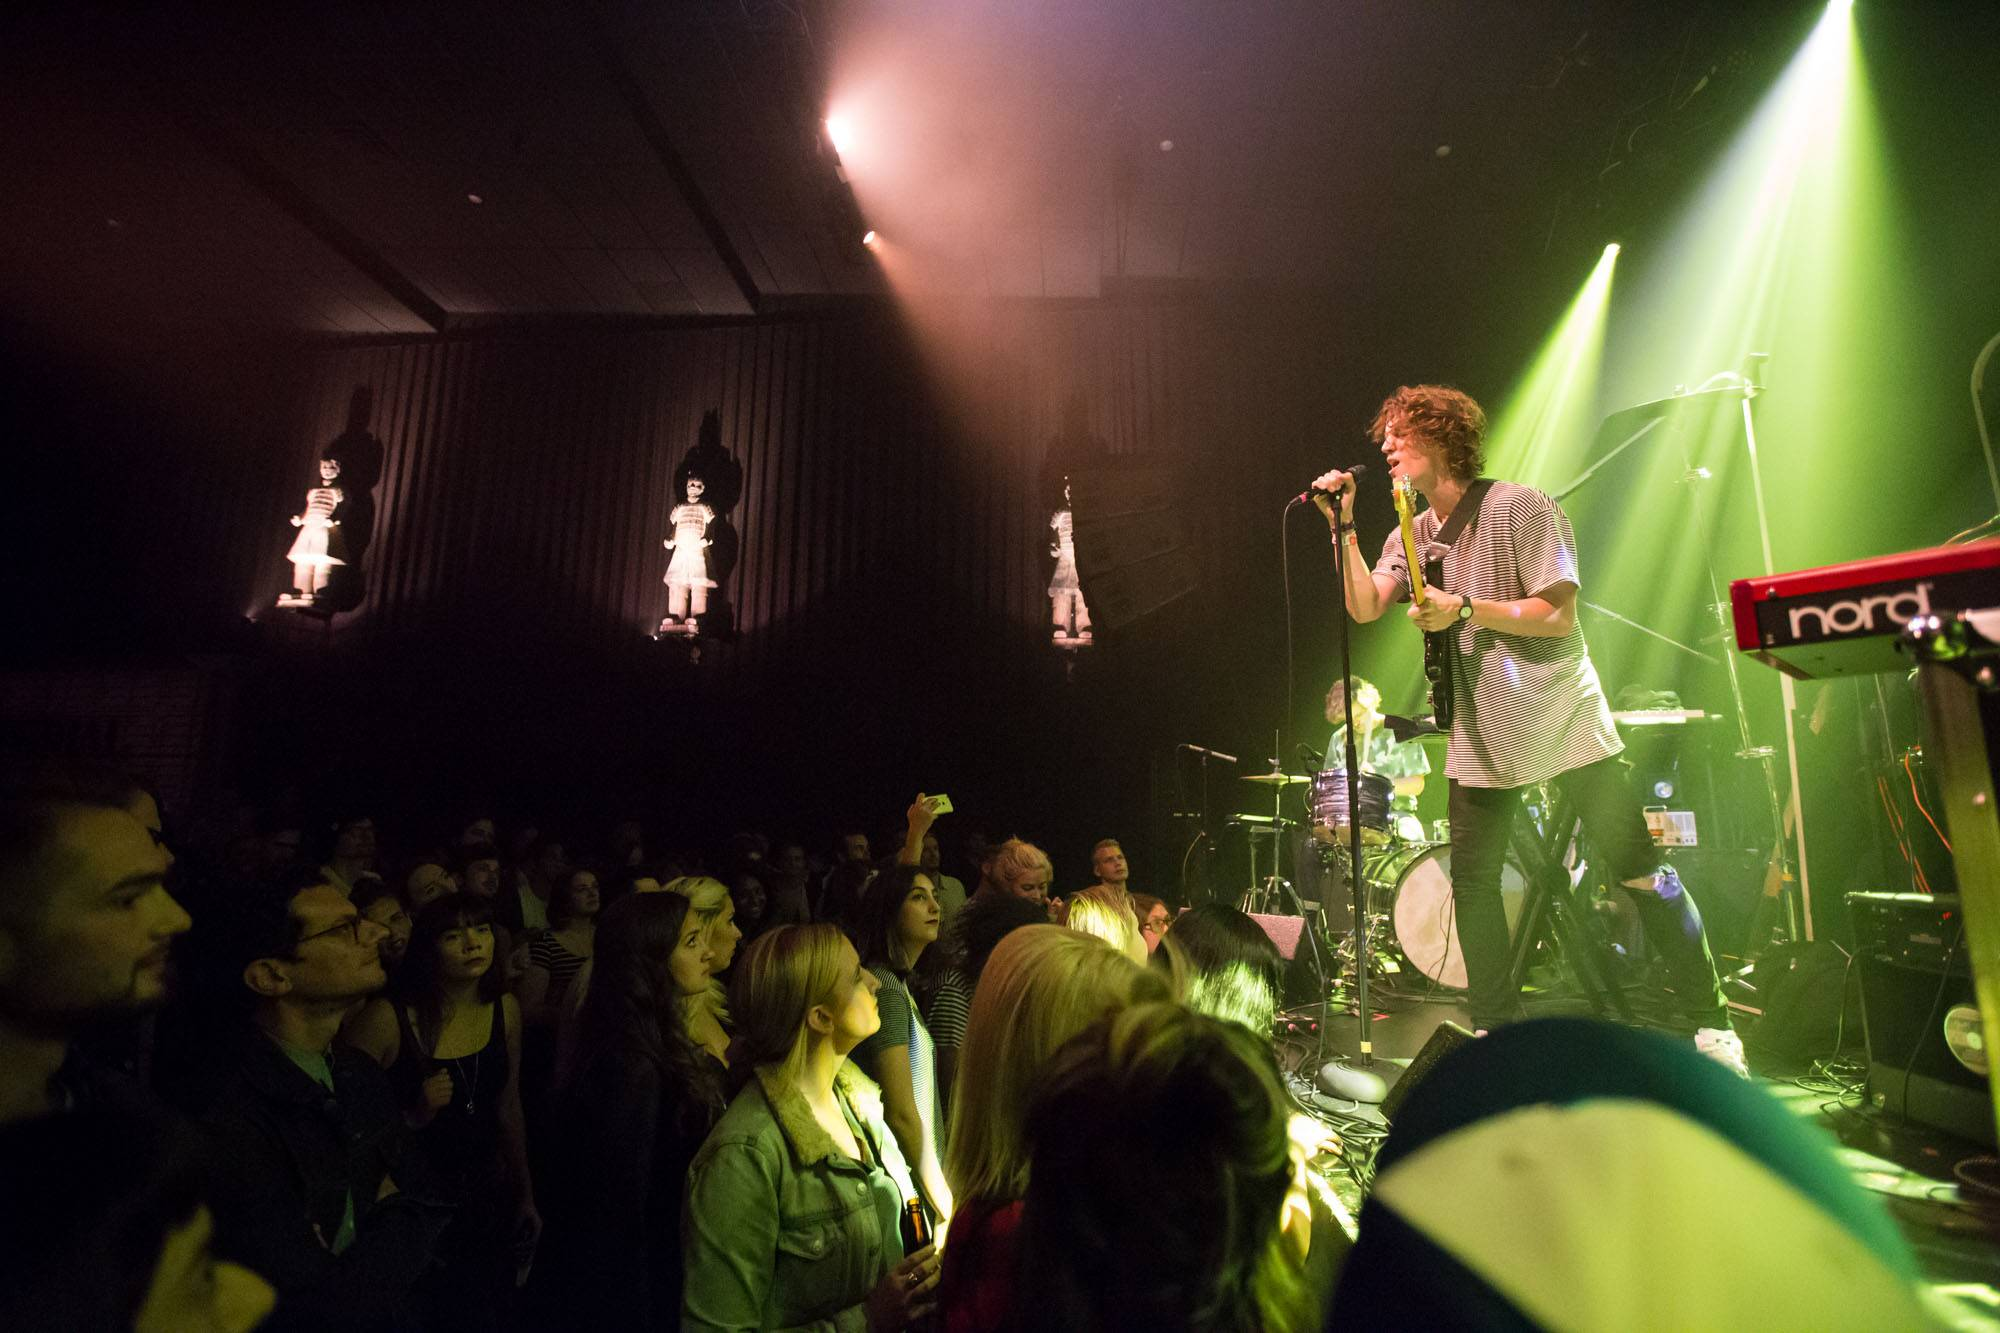 LANY at the Imperial Theatre, Vancouver, Aug 26 2015. Kirk Chantraine photo.